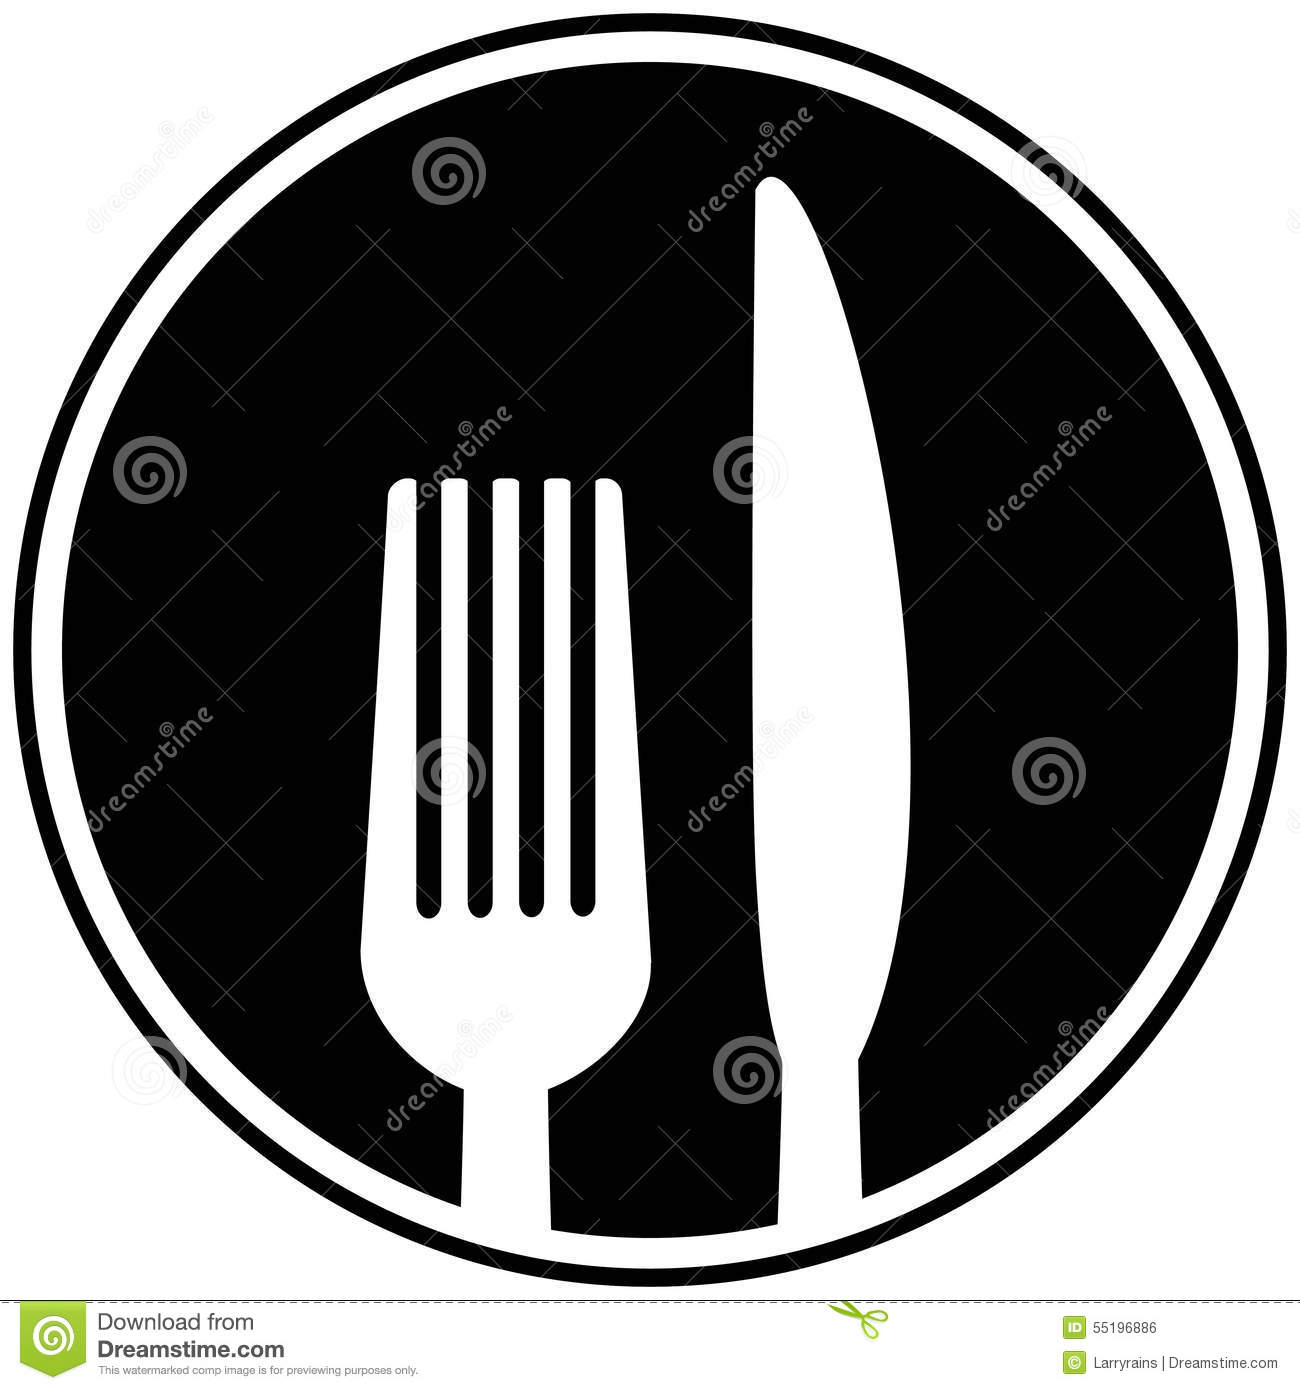 Fork And Knife Symbol Stock Vector Illustration Of Eating 55196886